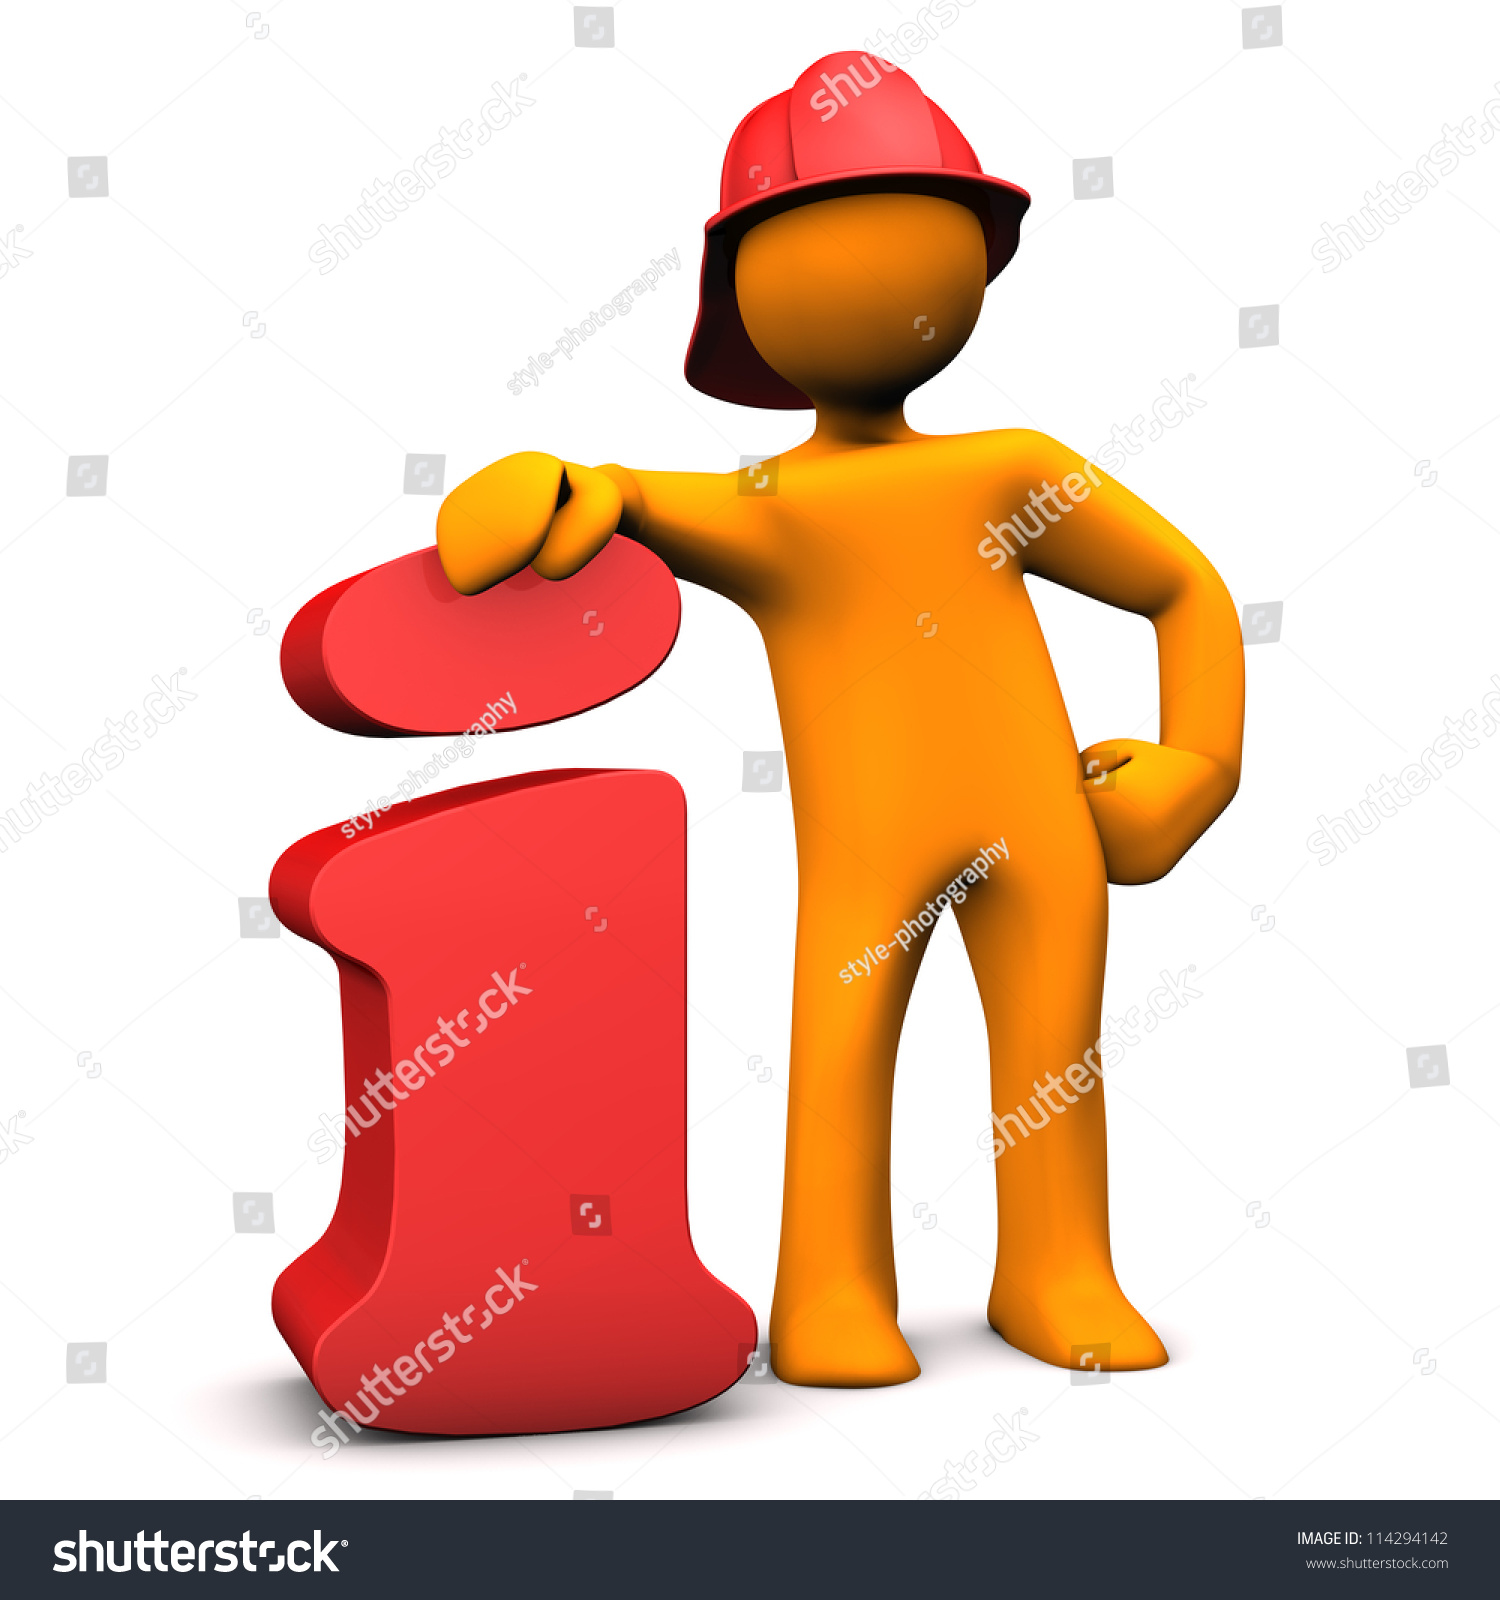 Orange cartoon character as fireman with info symbol. White background. 1676bbdad794